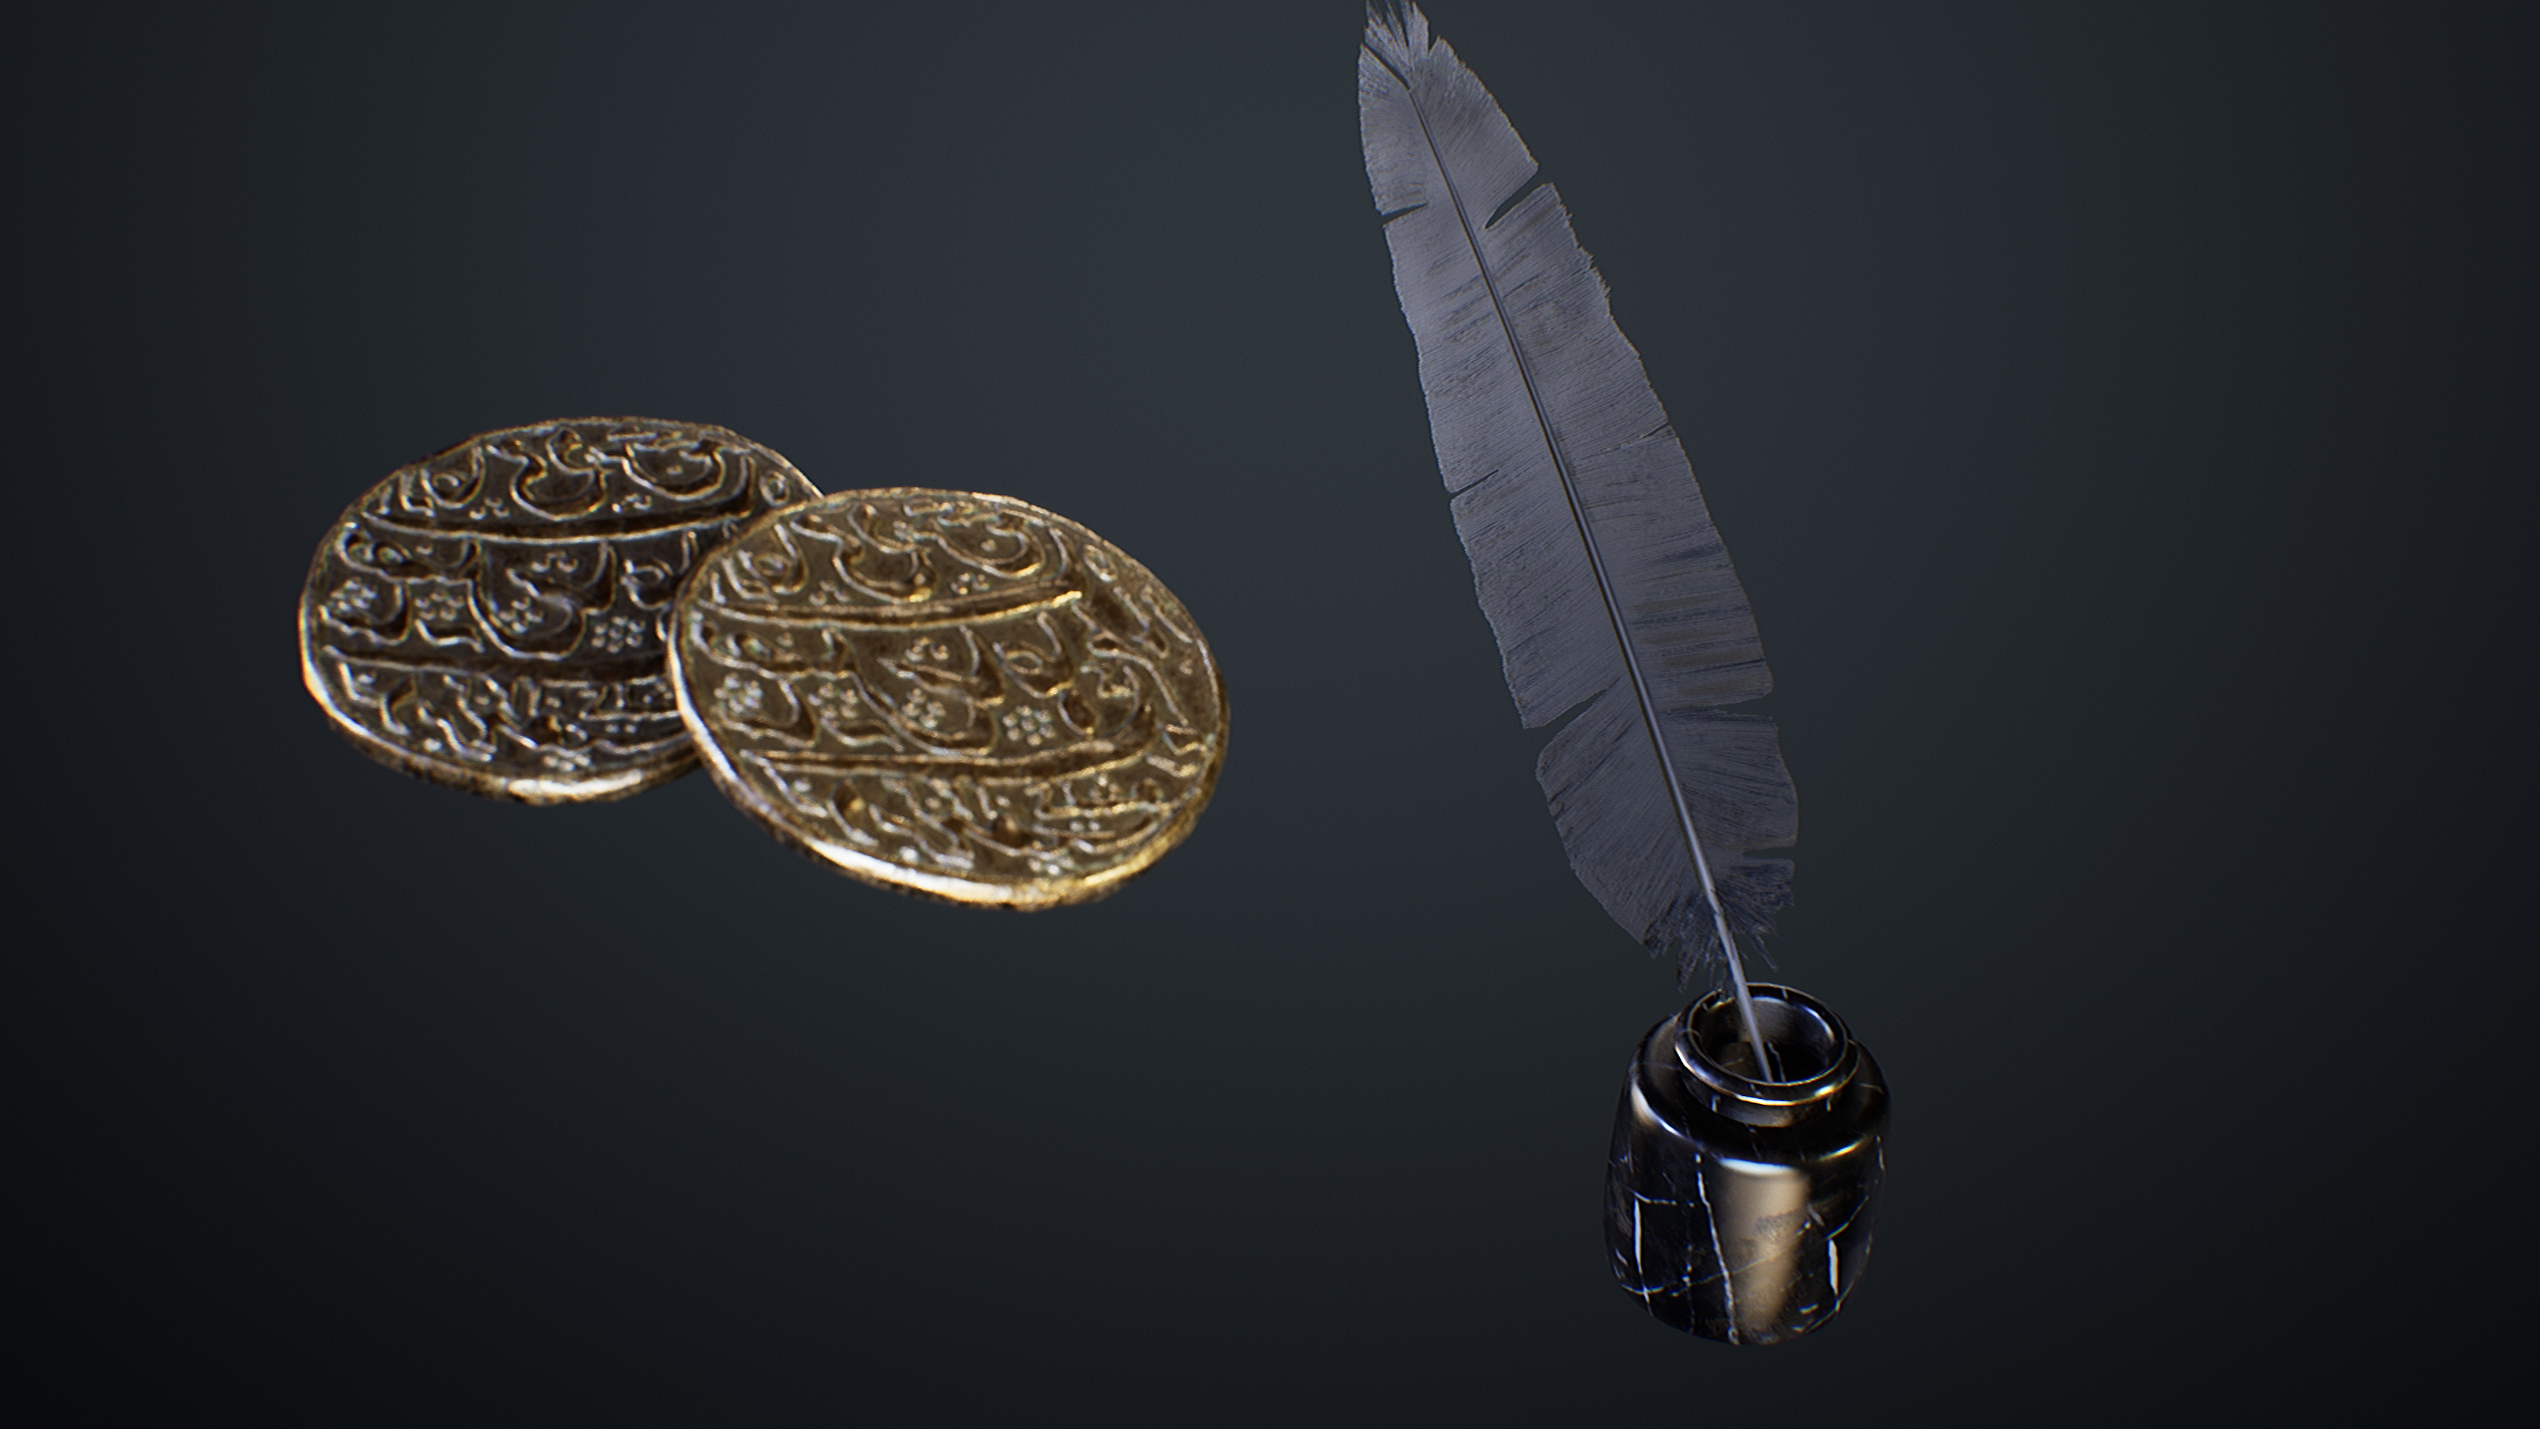 UE4 screenshot close up detailed shot of the feather and ink holder